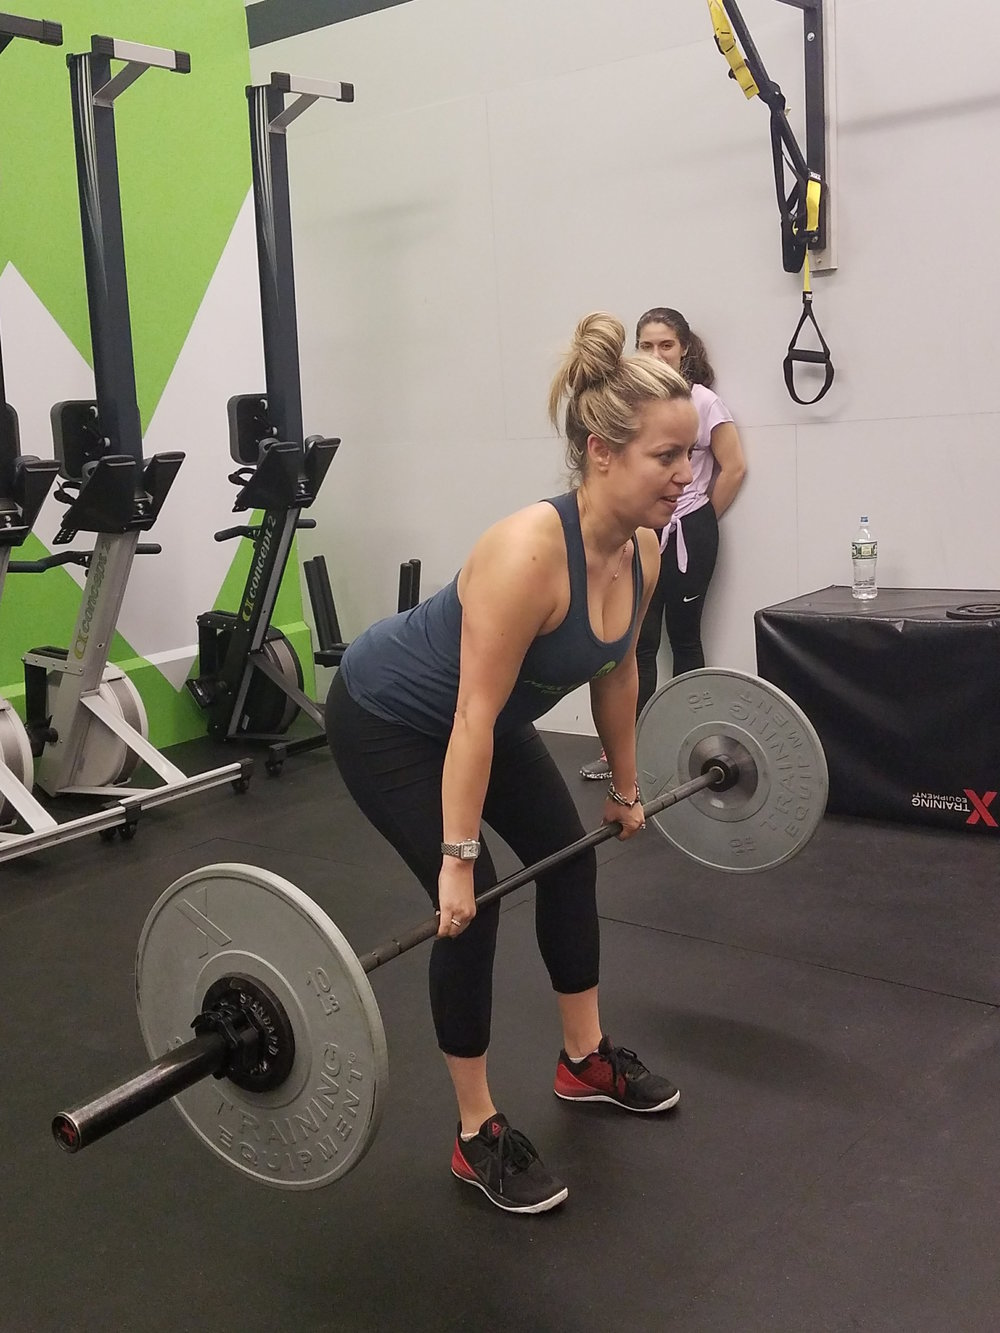 Danielle-Power Clean.jpg